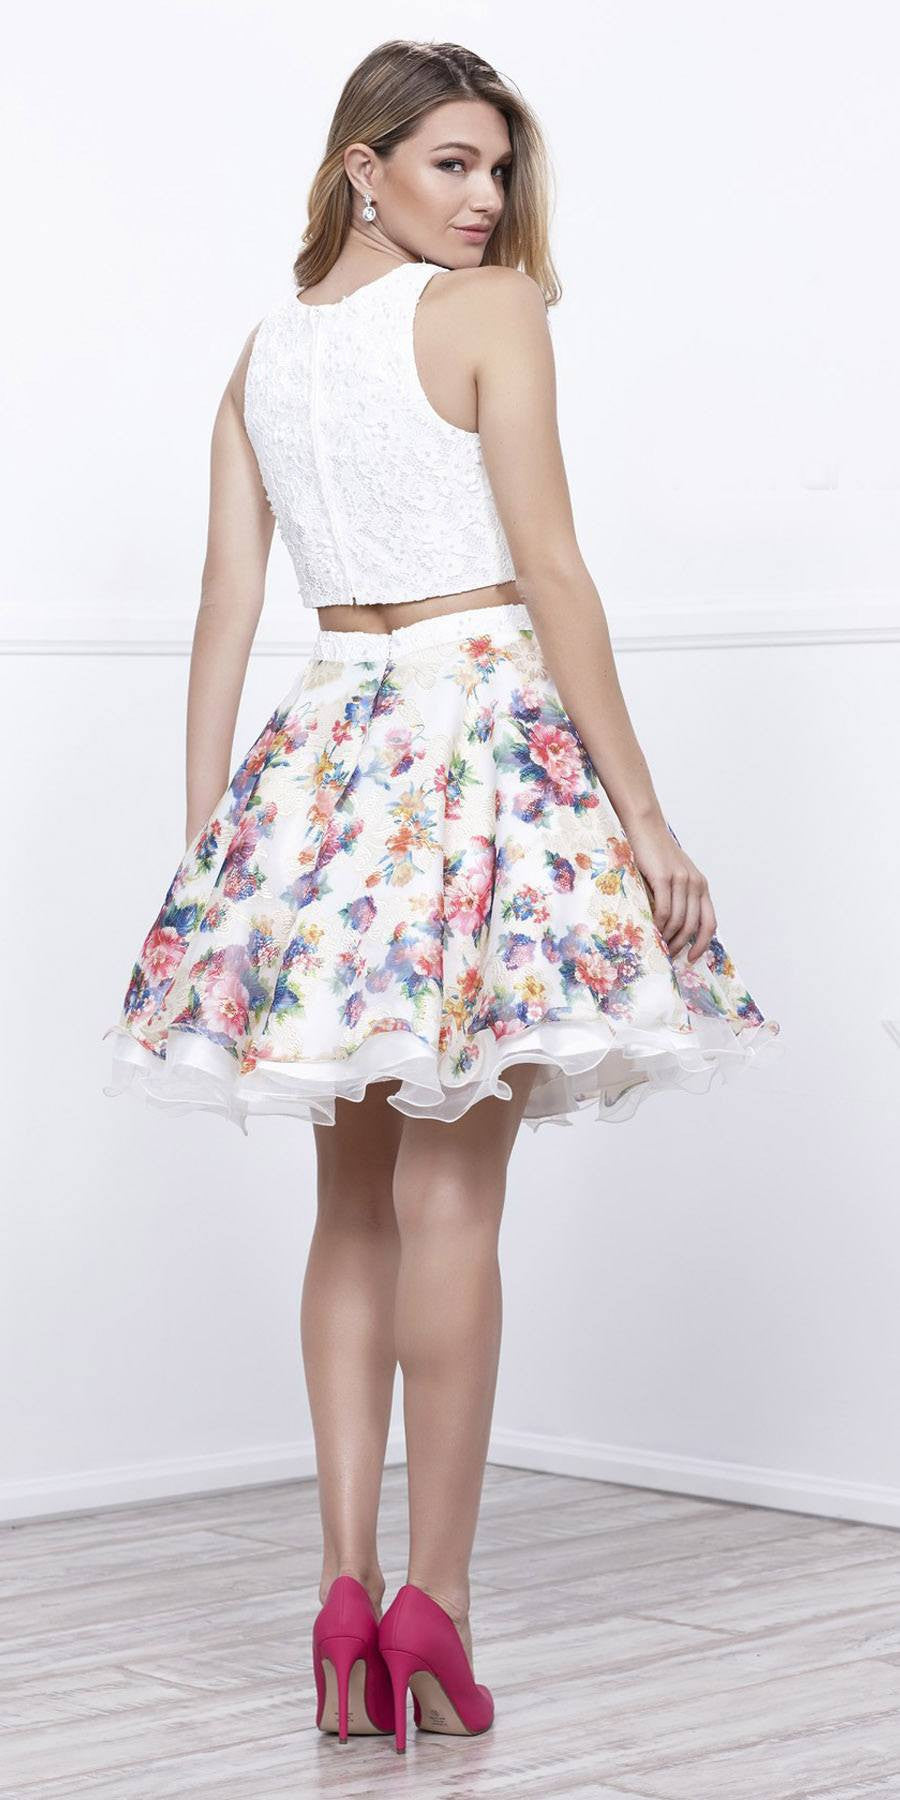 73d936bd7 Two-Piece Short Homecoming Dress Floral Printed Skirt White Sleeveless